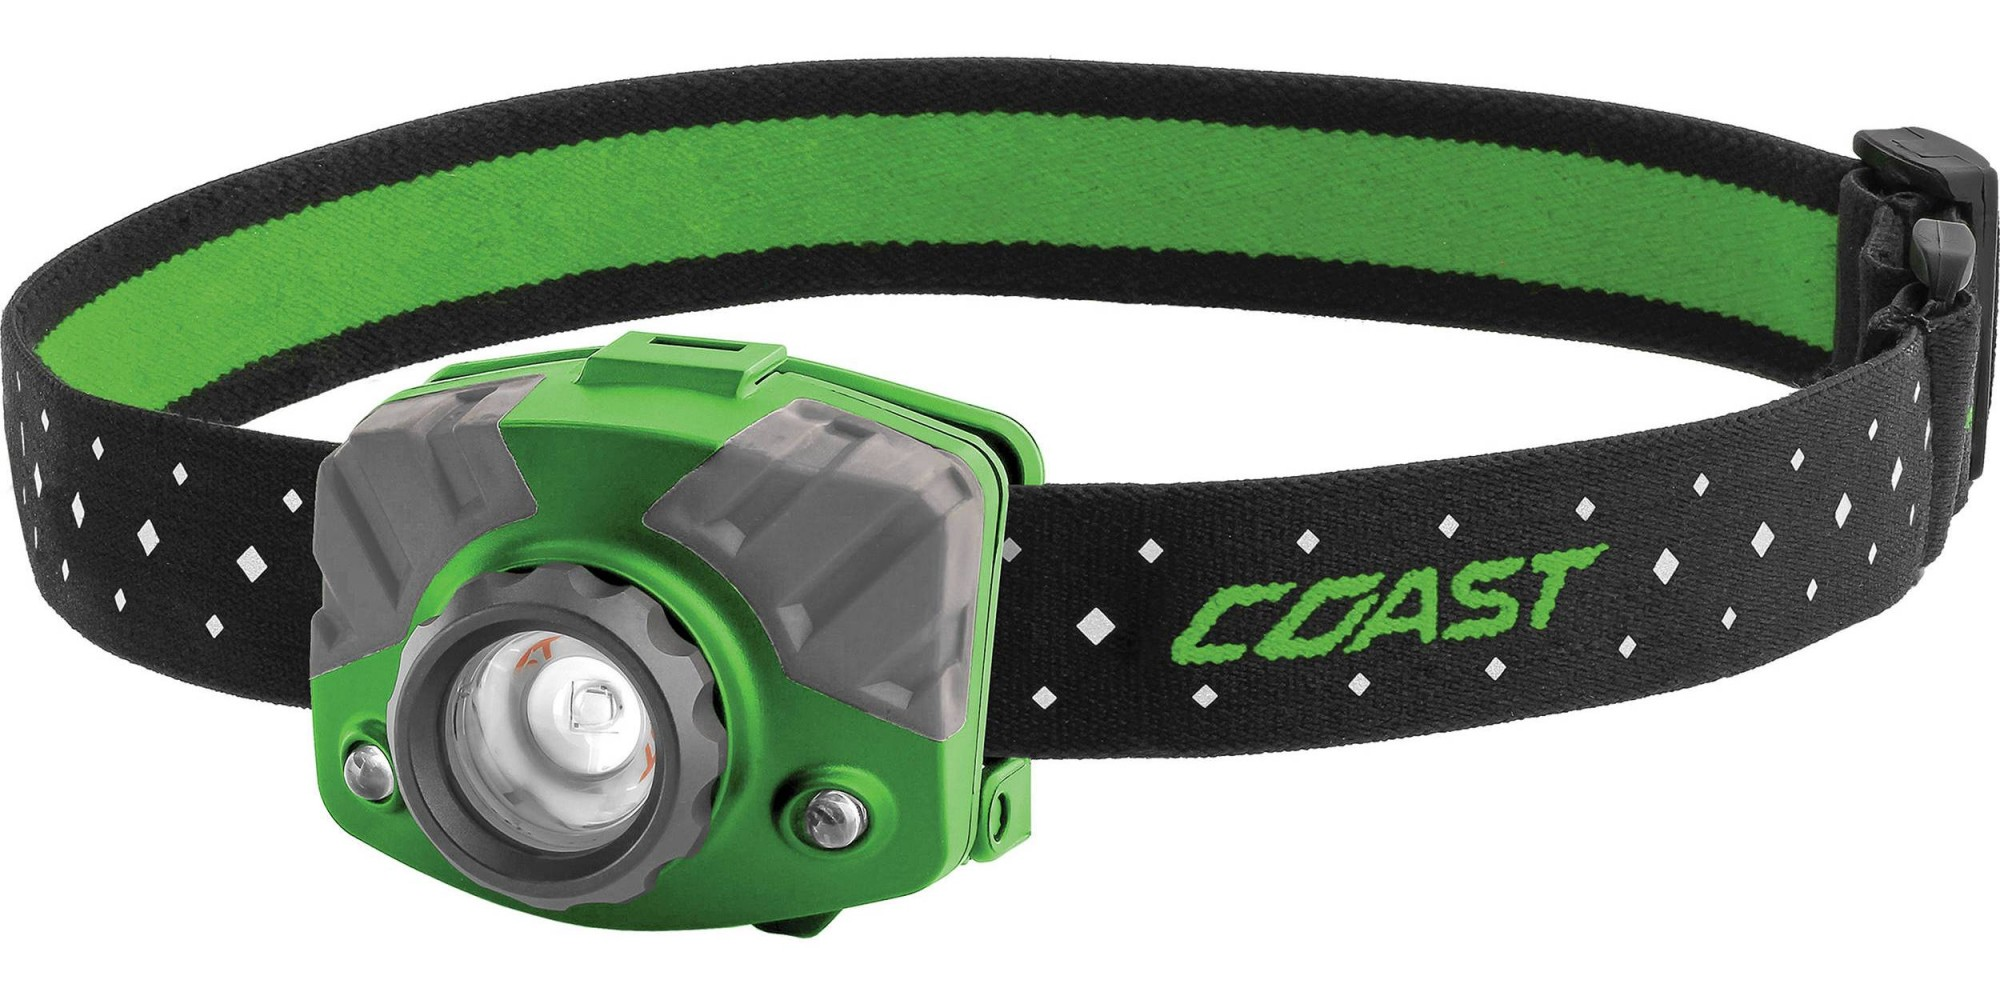 Coast FL75R Rechargeable Pure Beam Focus Headlamp - 20619, Green